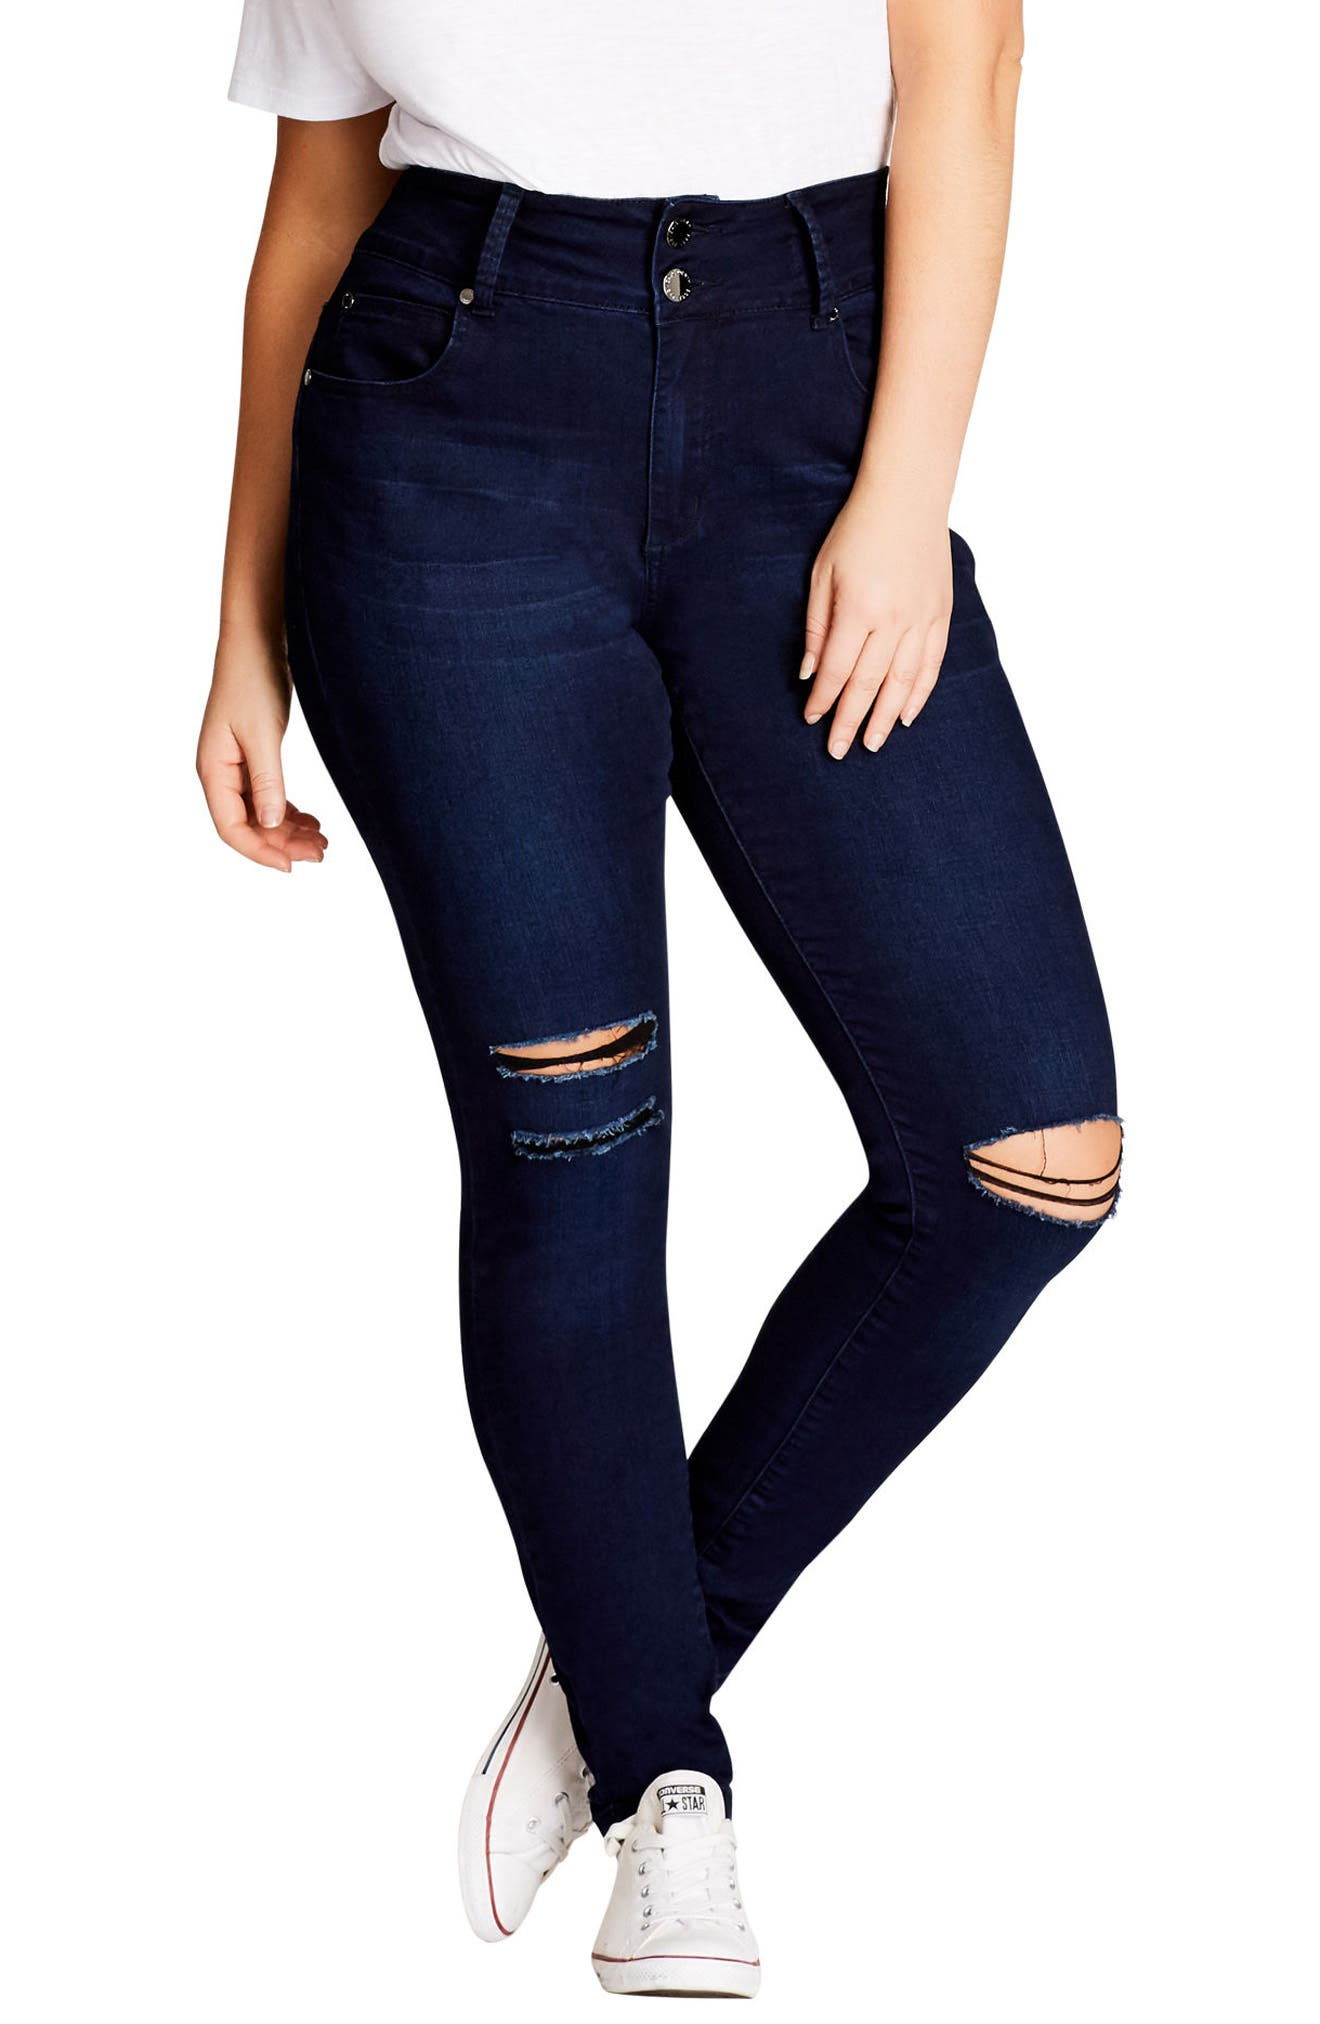 Harley Ripped High Rise Skinny Jeans,                         Main,                         color, Indigo